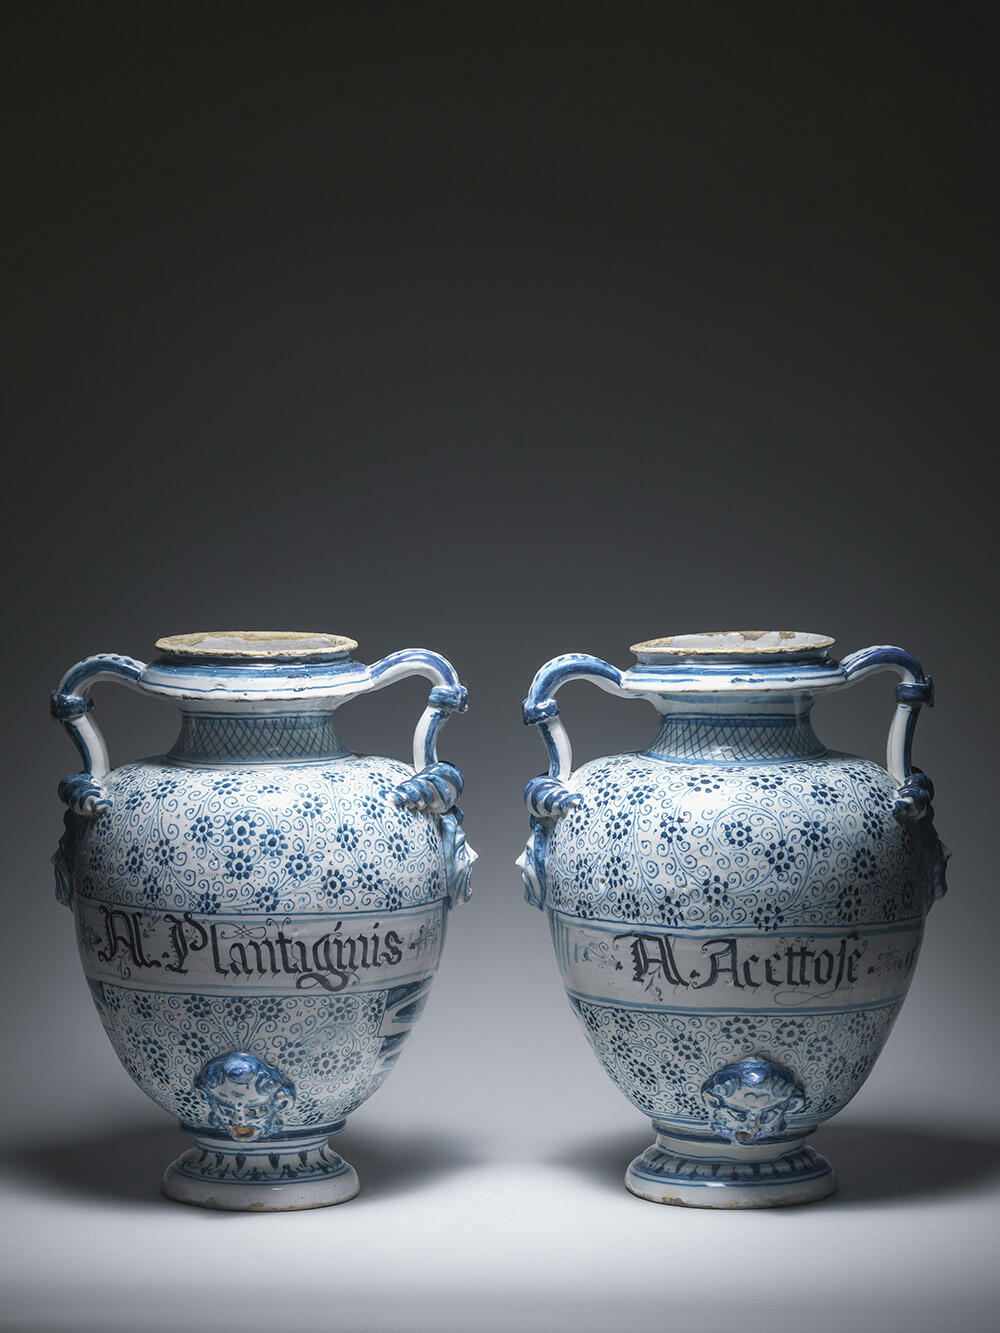 Two large pharmacy jars, stagnone, with spiral decoration inspired by 'Golden Horn' ware from Iznik, inscribed for Acqua Plantaginis and Acqua Acettose, Savona or Albissola, first half 17th century. 40 cm.